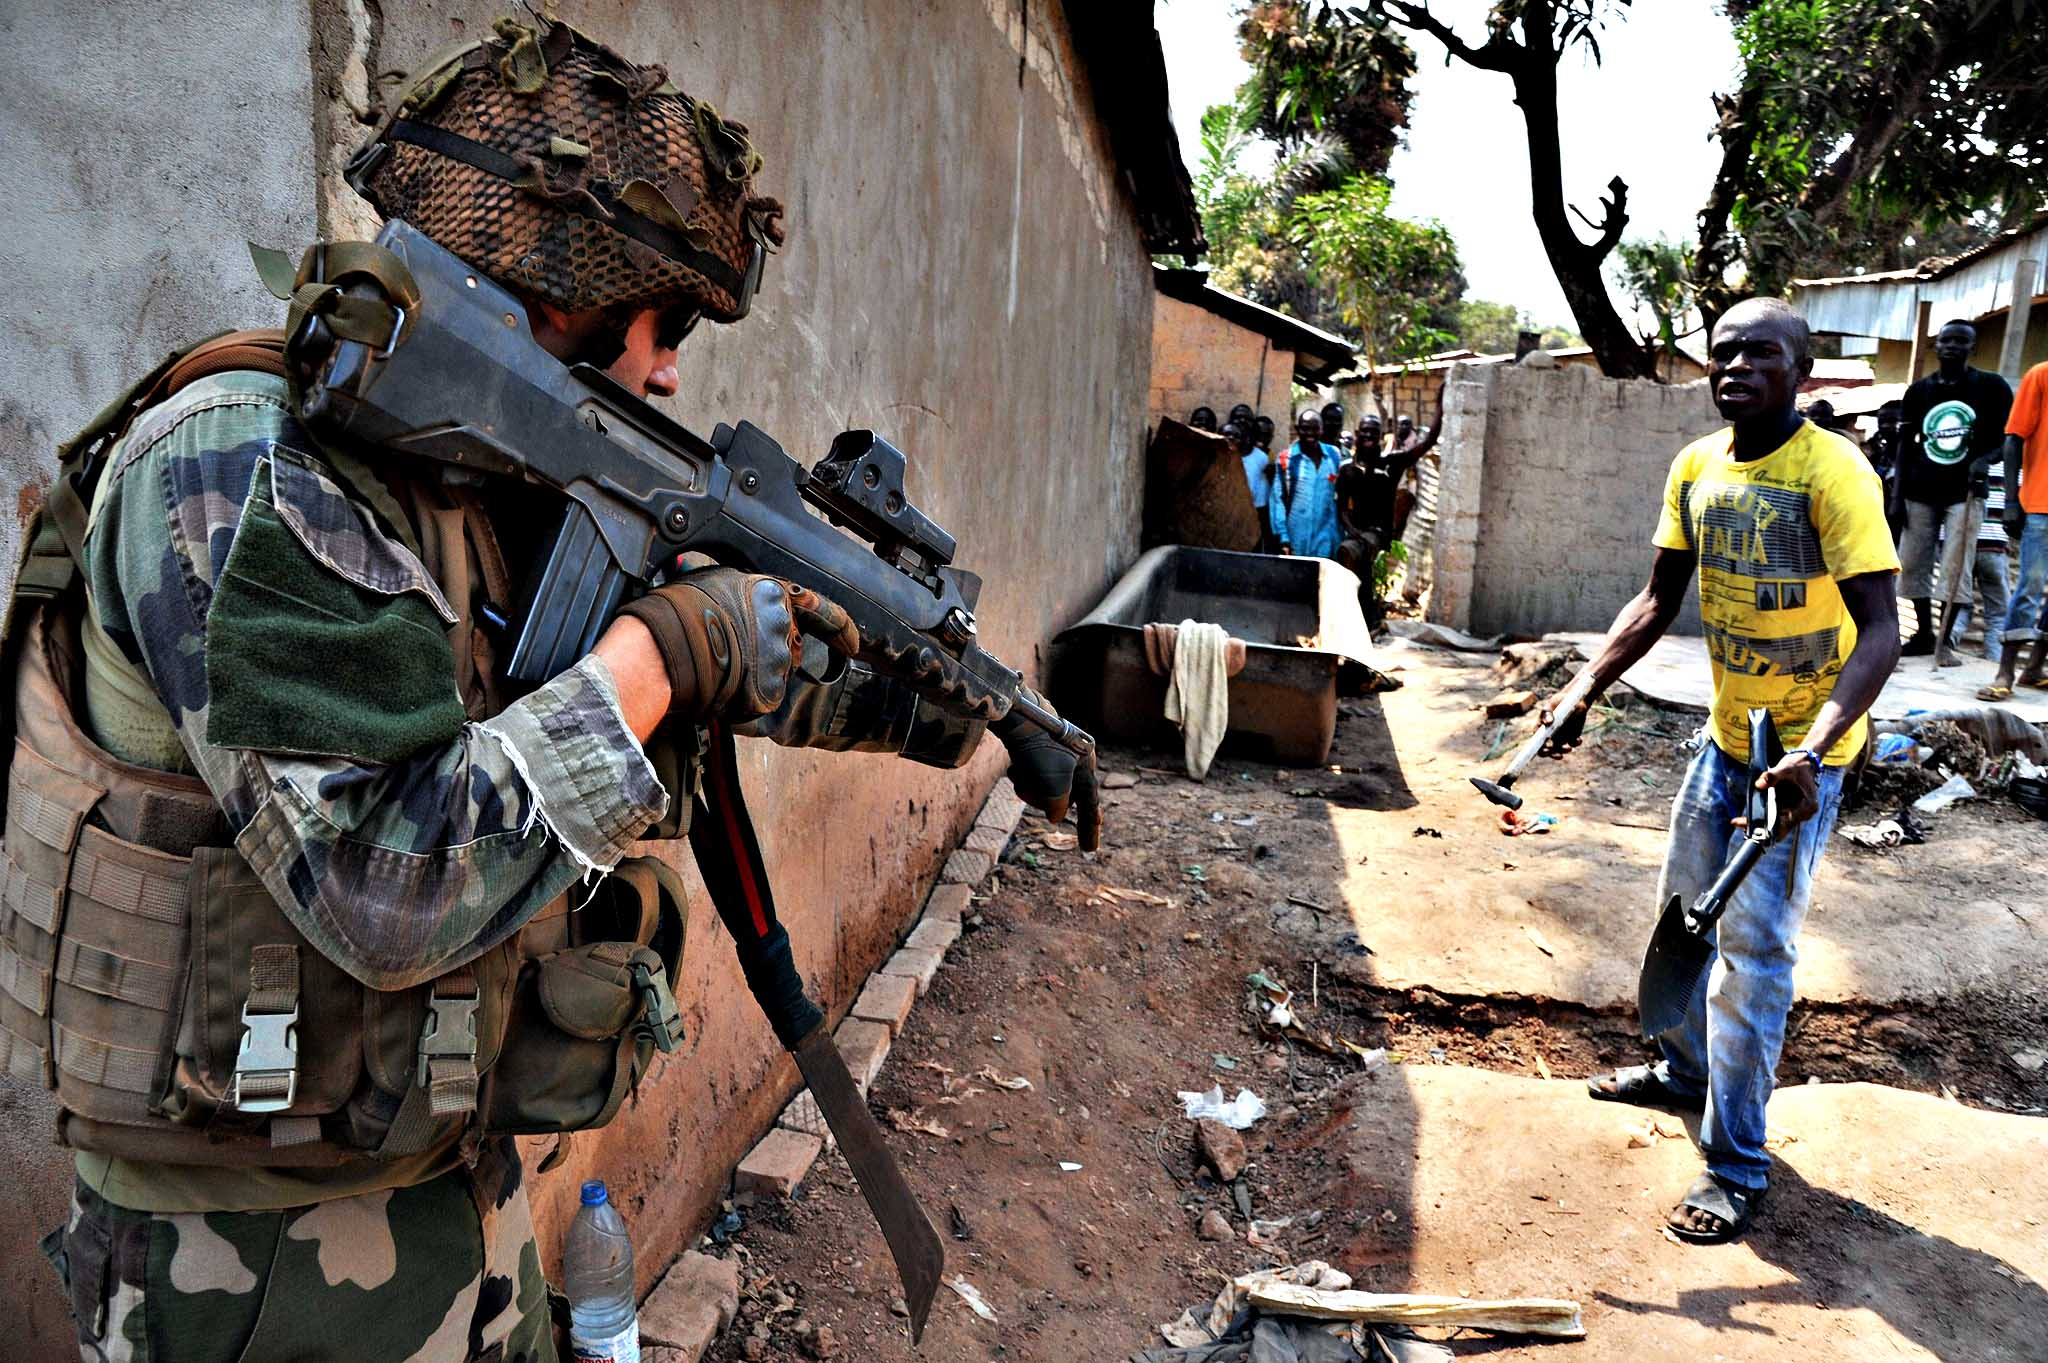 A French soldier of Operation Sangaris asks a man to put down his hammer and shovel during a patrol in Bangui on January 29, 2014. Gunfire erupted on January 29 in Bangui, still plagued by looting despite the security operations of French and African soldiers, now awaiting the reinforcement of a European force whose engagement has been authorized by the United Nations.